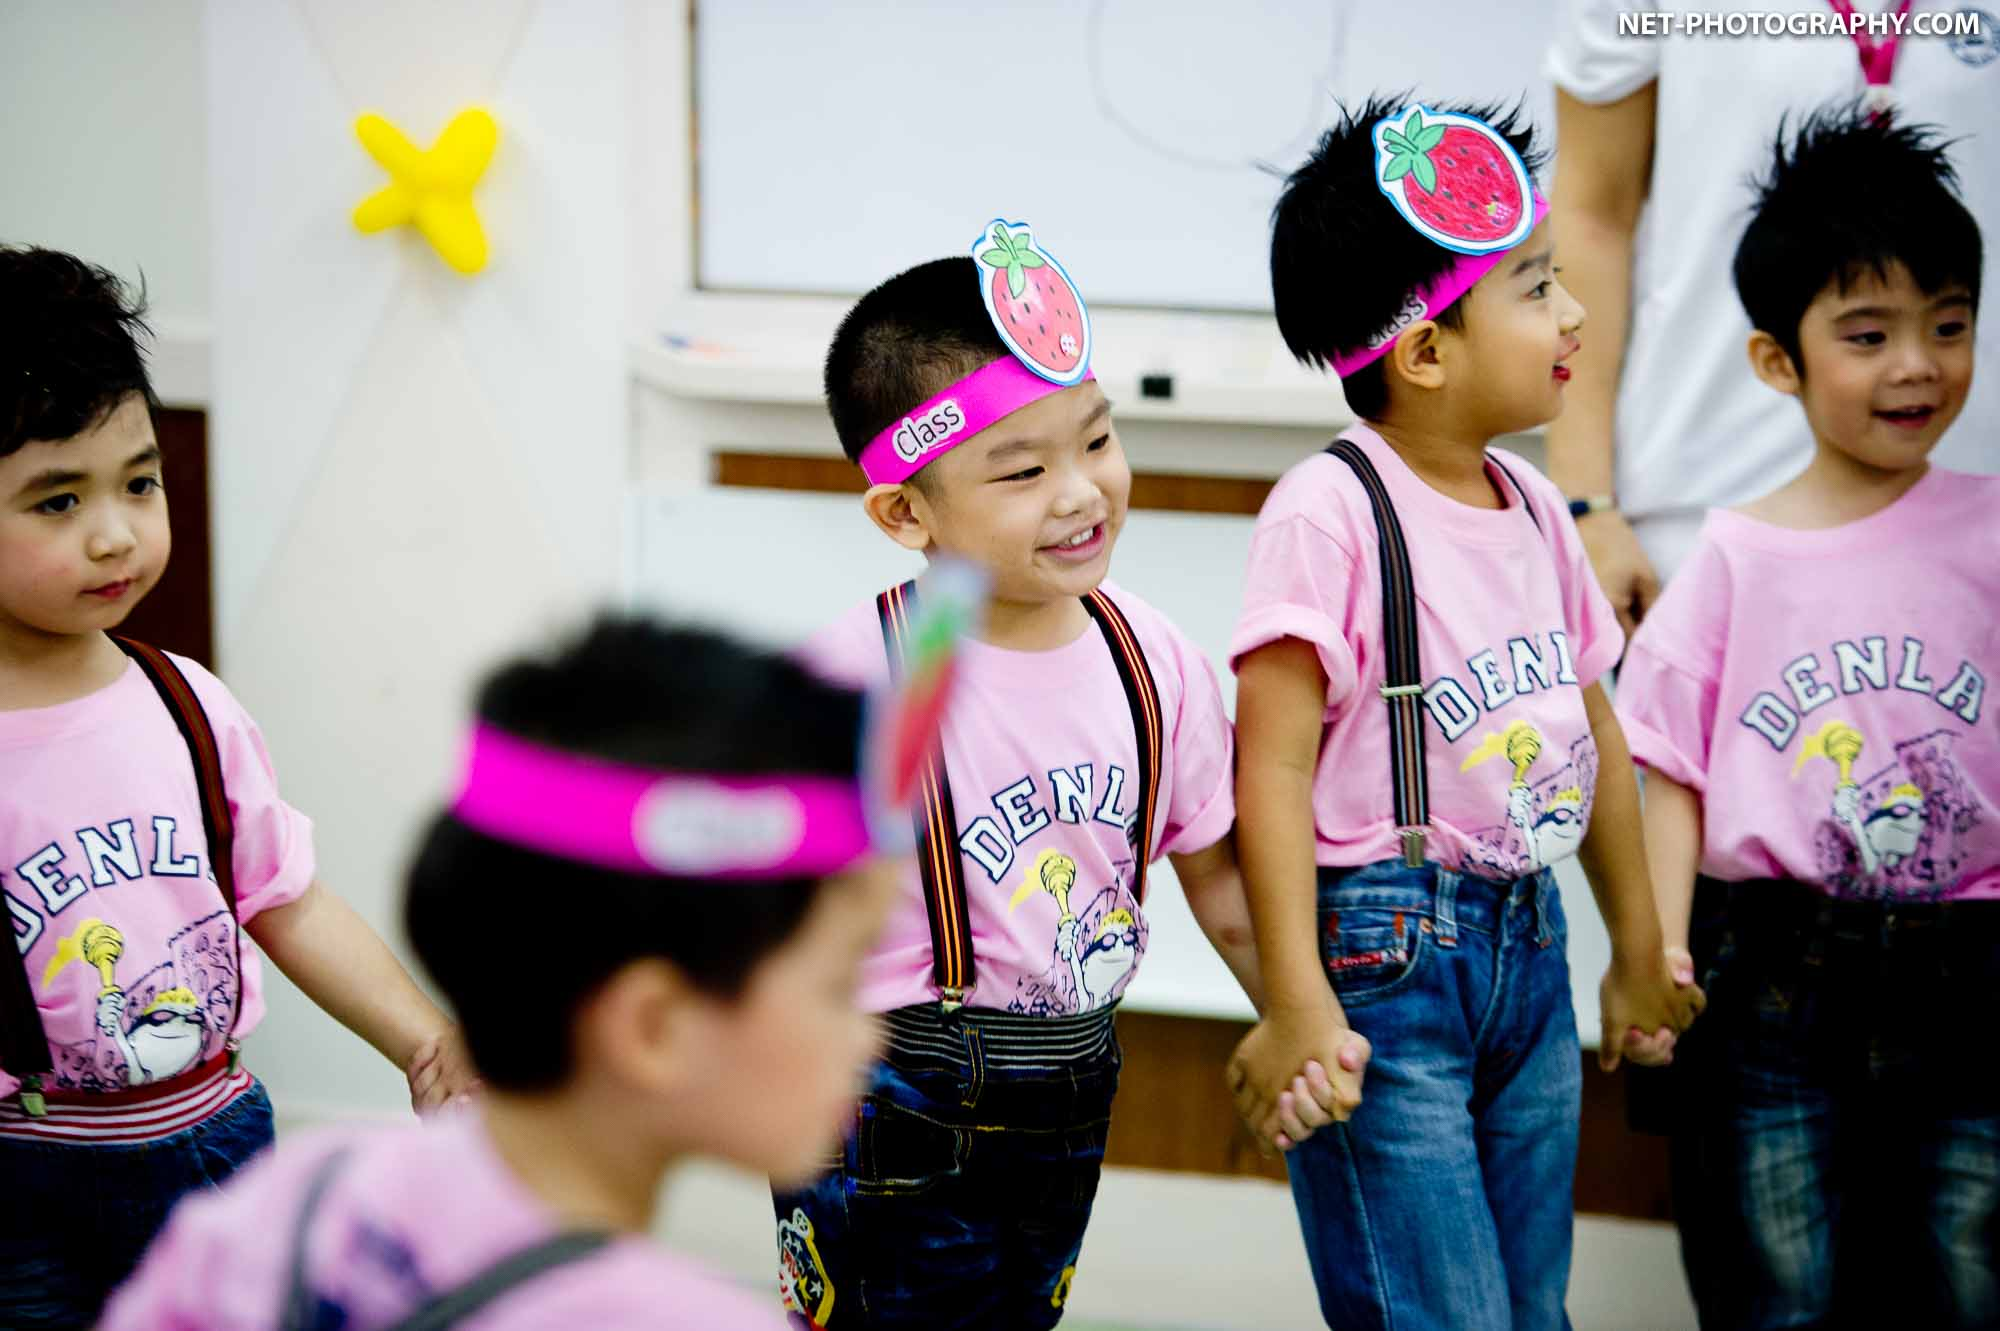 Denla School Bangkok Event Photography